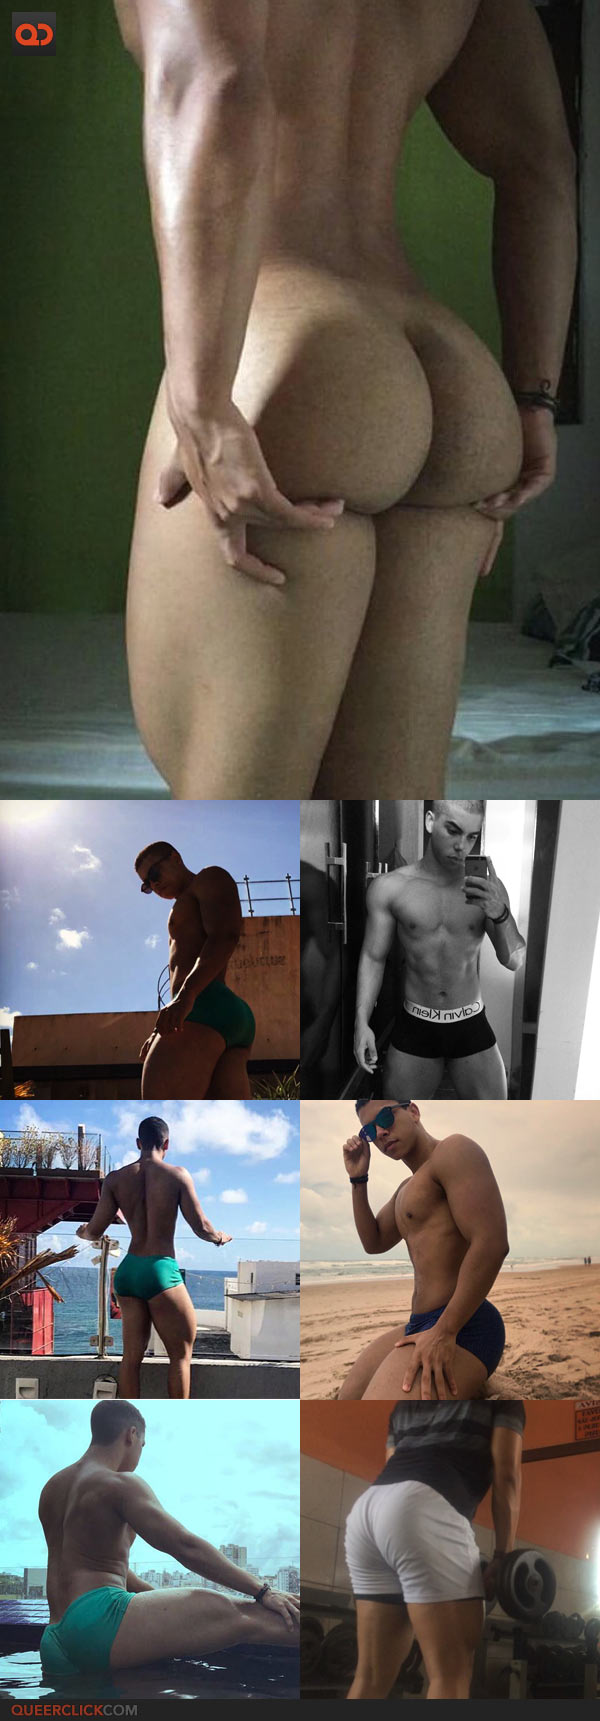 Ten Best Muscle Butts From Instagram You Need To Follow Right Now! - Part 2